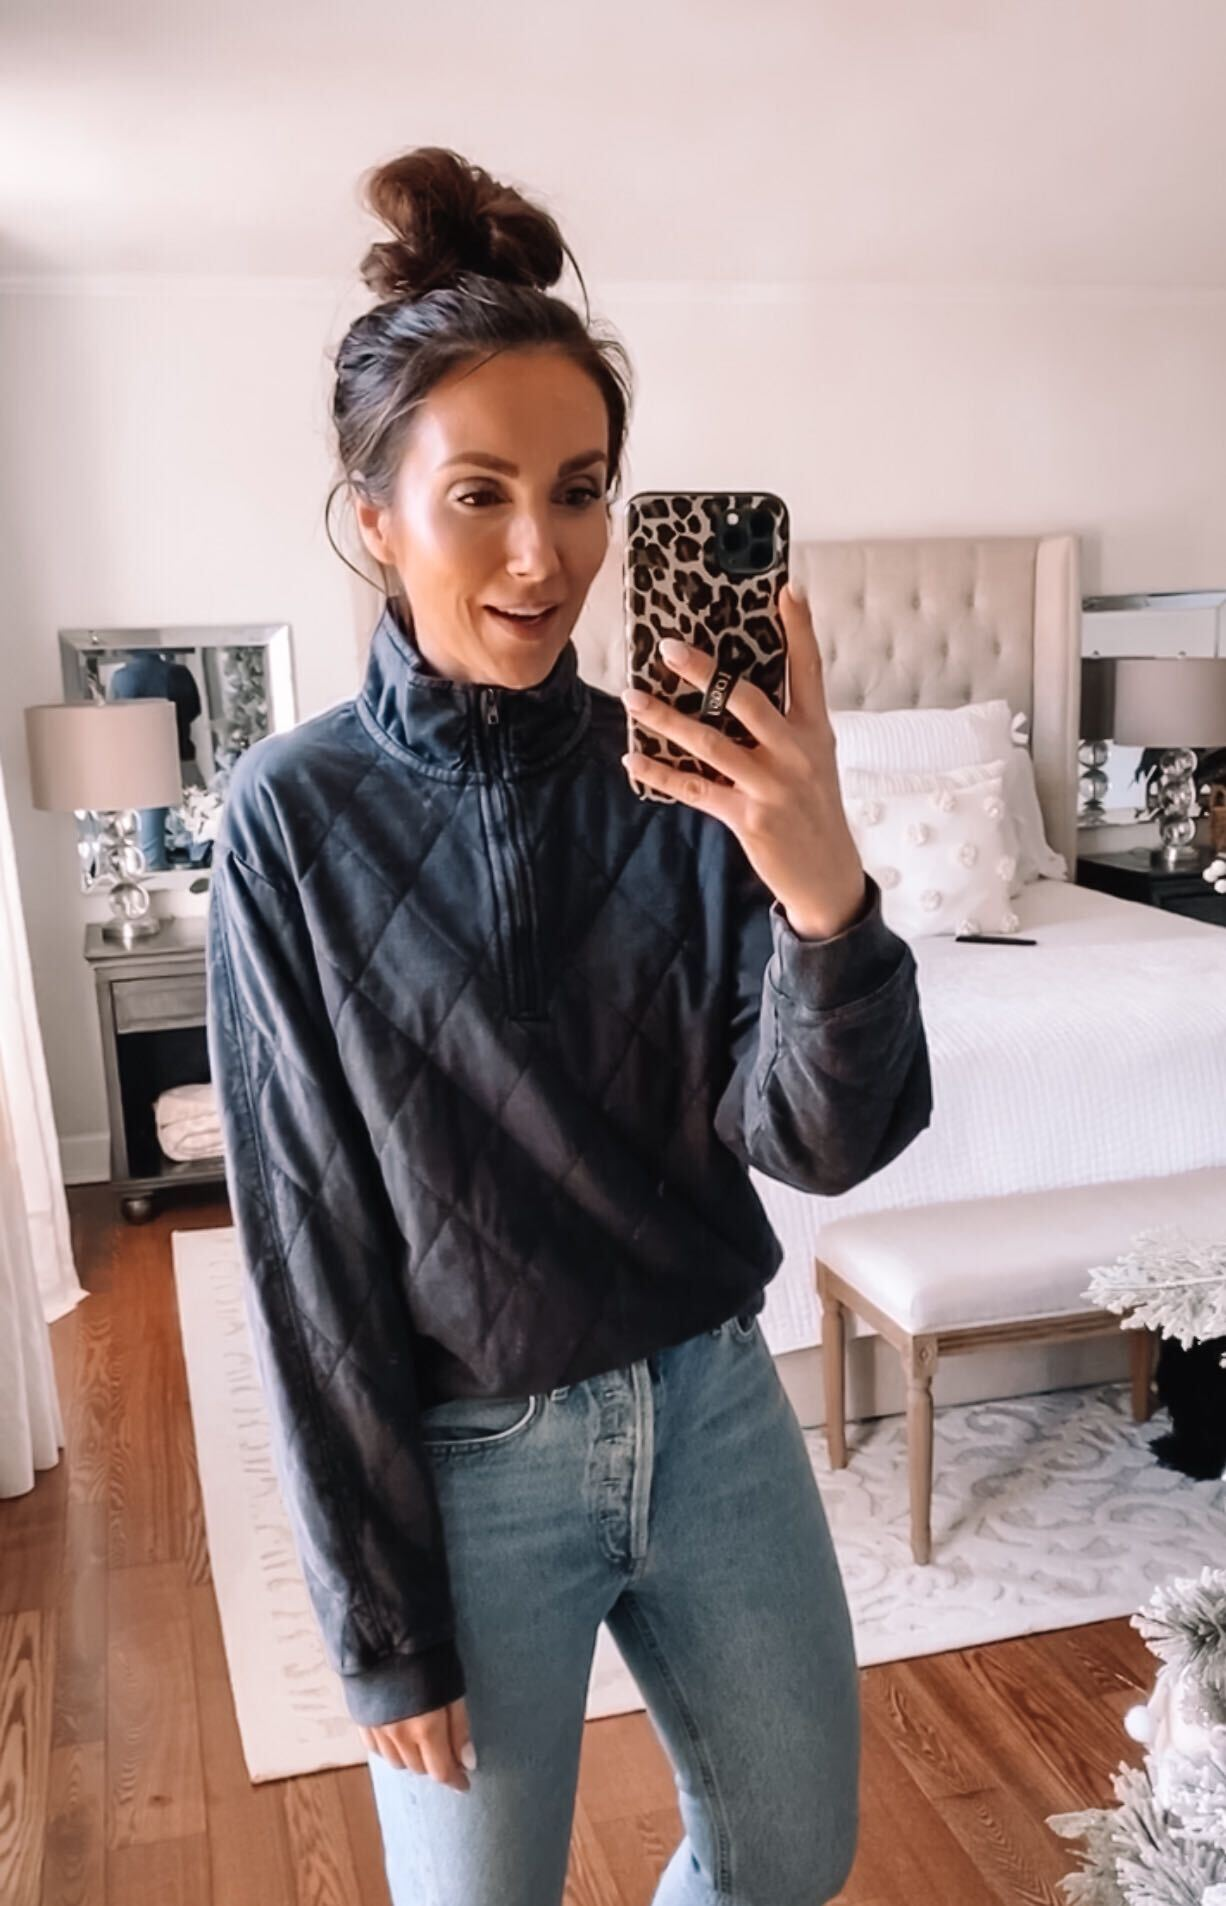 target style, quilted jacket with jeans